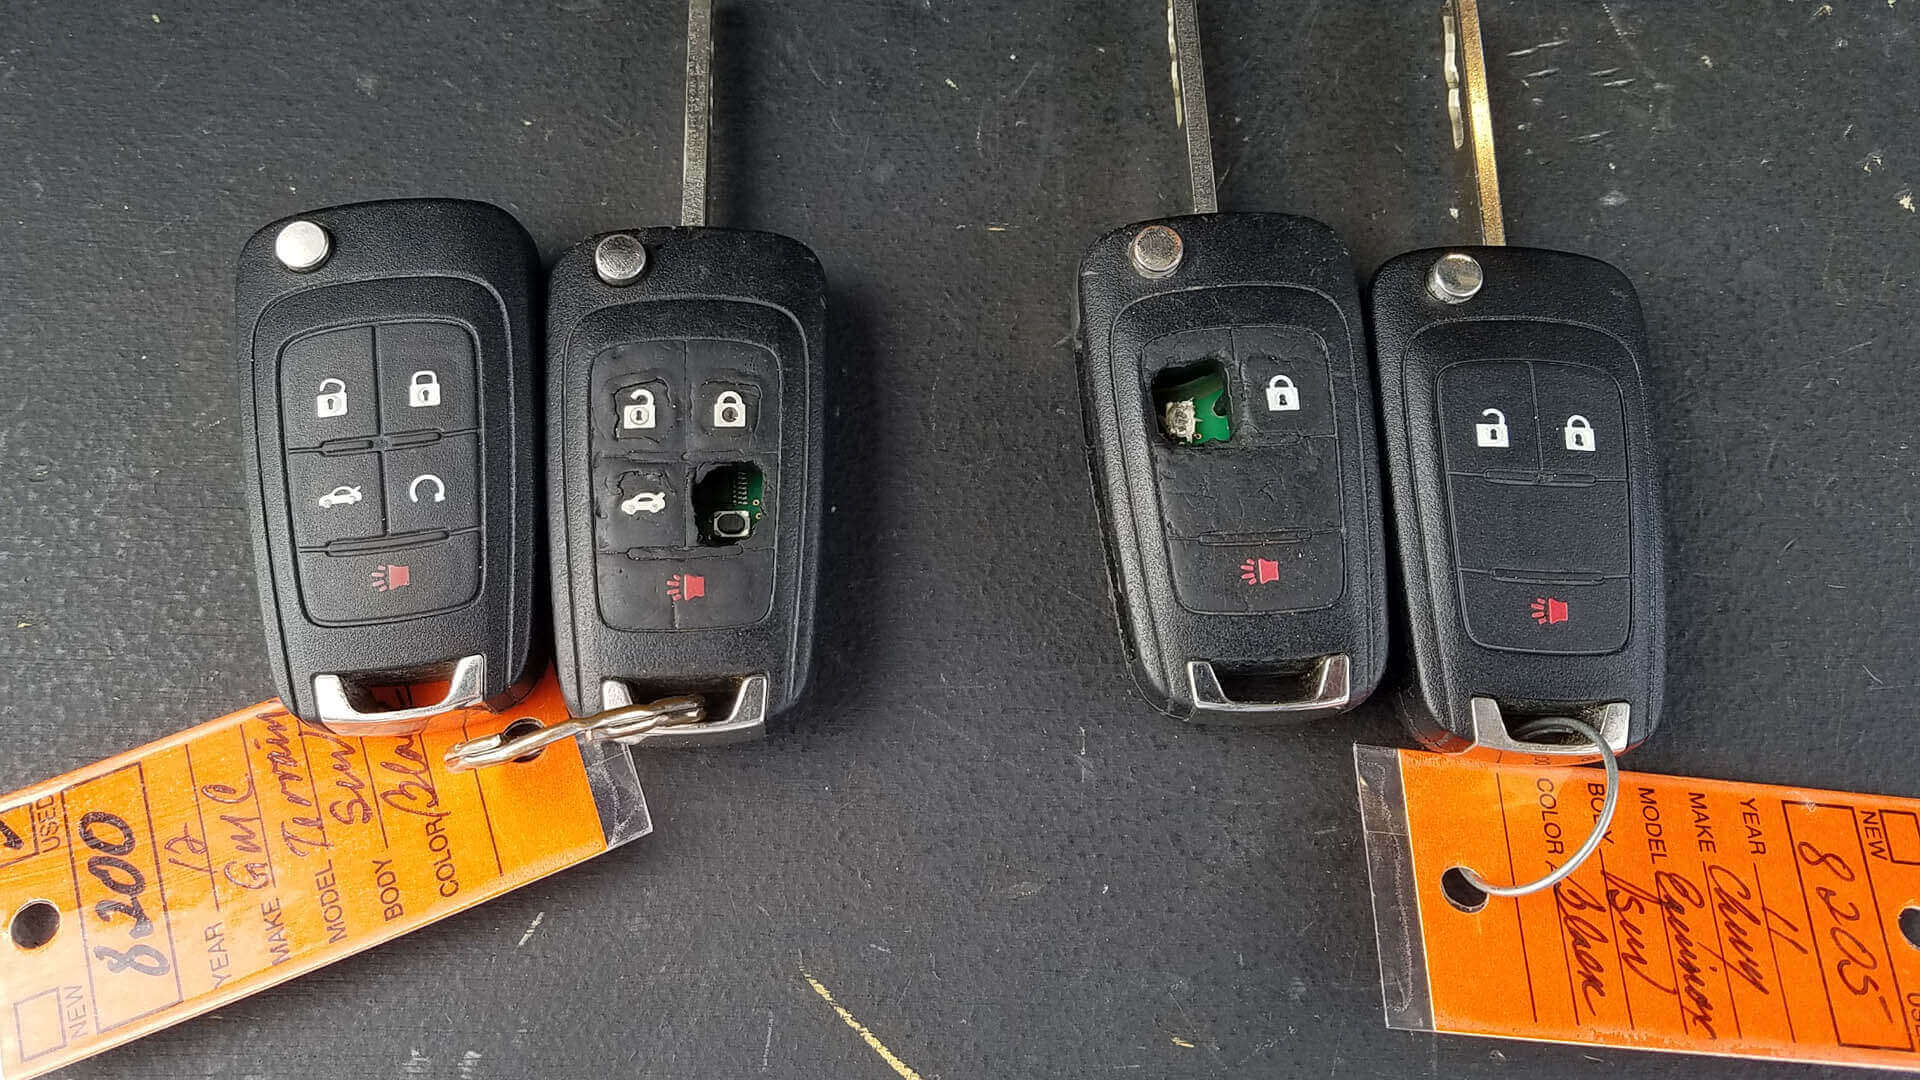 Broken car keys with the new replacement keys.